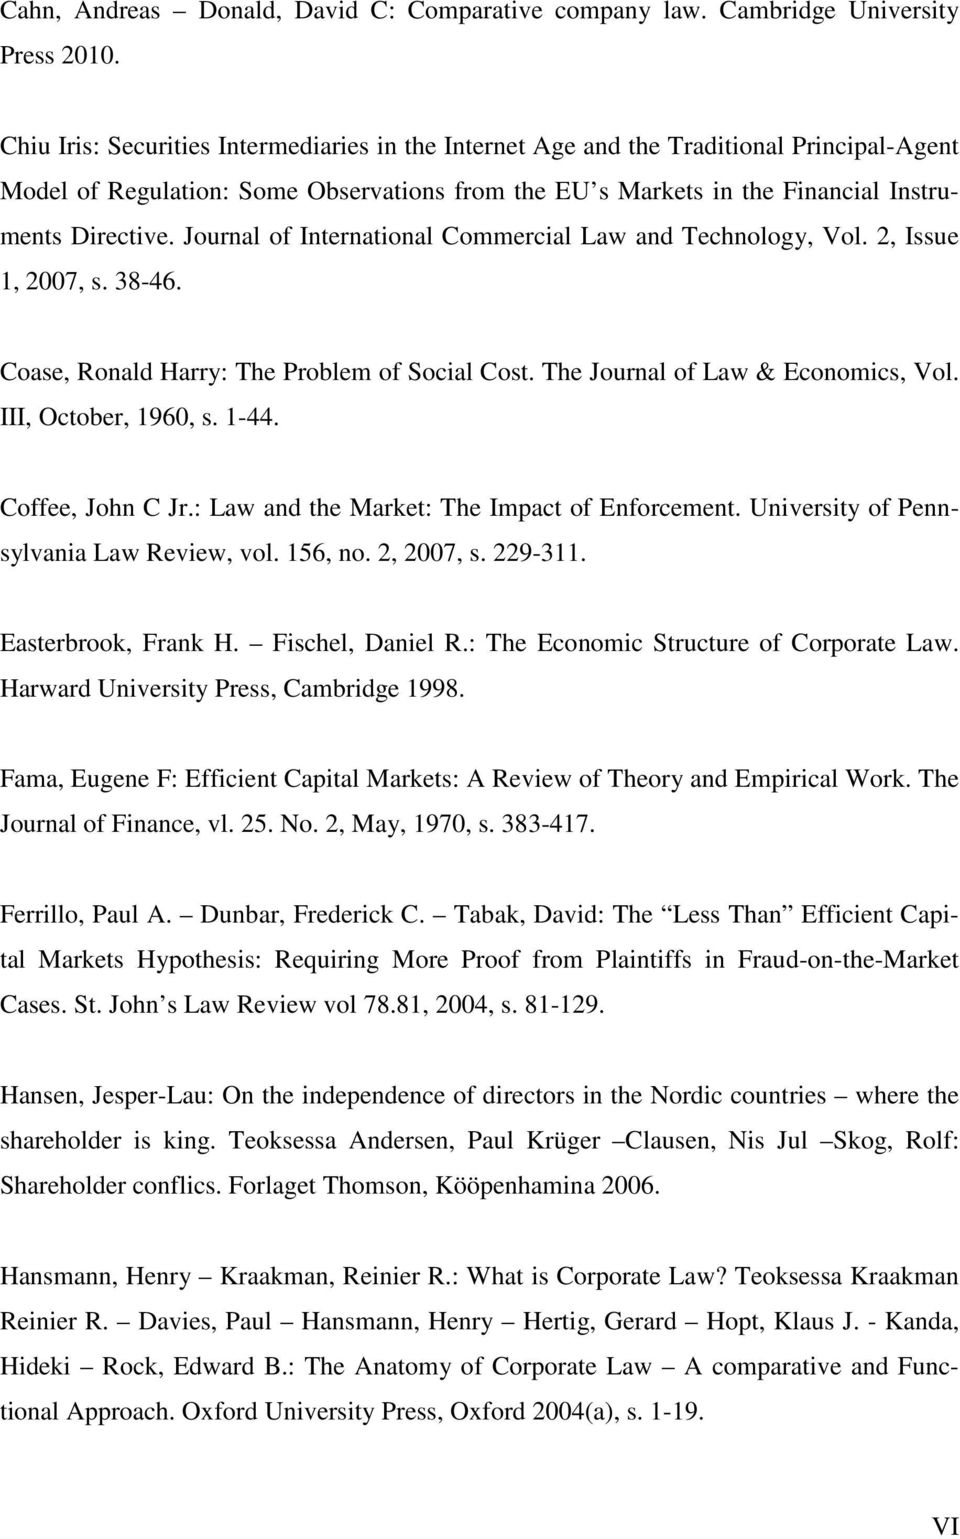 Journal of International Commercial Law and Technology, Vol. 2, Issue 1, 2007, s. 38-46. Coase, Ronald Harry: The Problem of Social Cost. The Journal of Law & Economics, Vol. III, October, 1960, s.